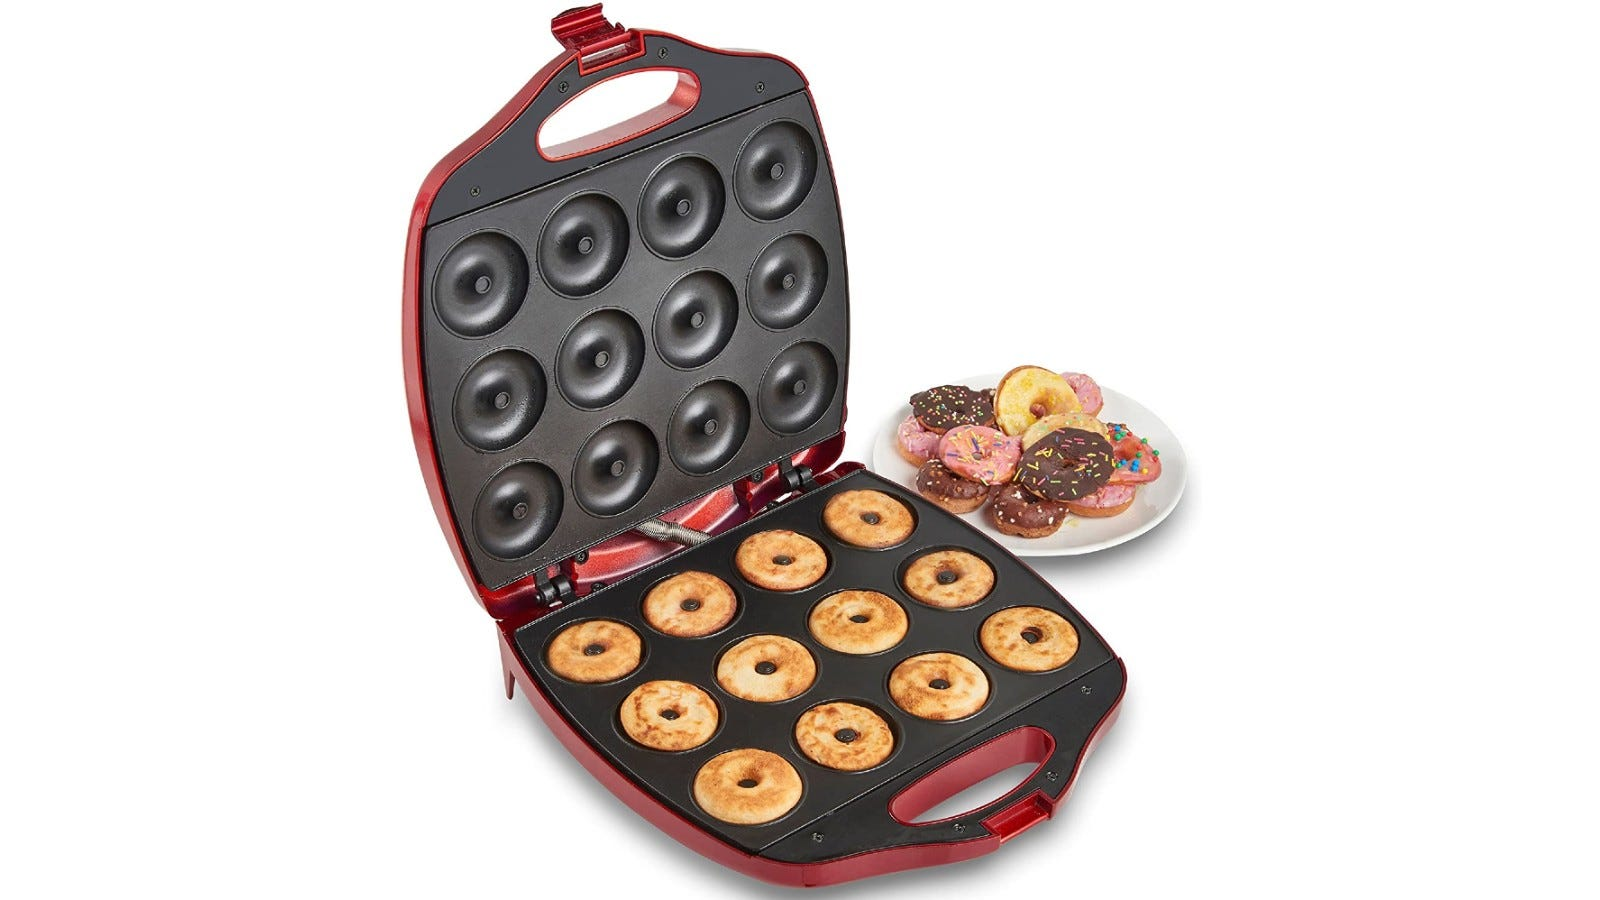 A large donut machine with 12 donuts cooking inside and finished donuts on a plate in the background